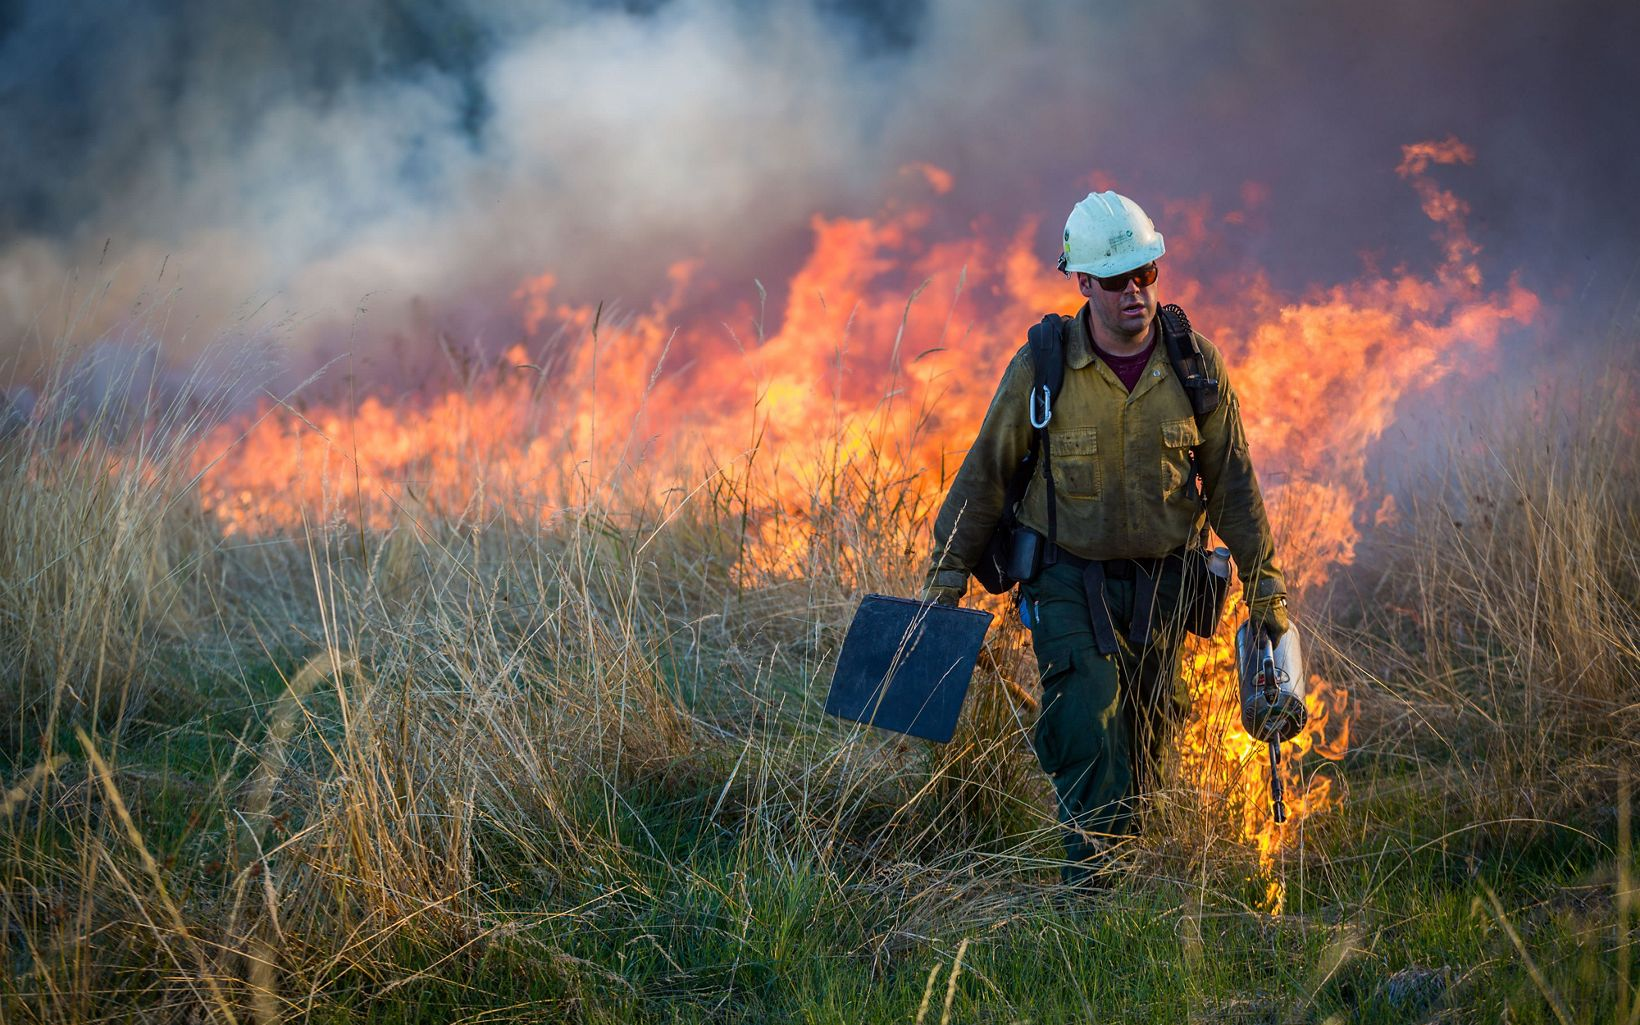 Weston Toll lighting fire with a drip torch on Loup Farm in Willamette Valley, Oregon. In October 2015, the Nature Conservancy's Southern Rockies Wildland Fire Module traveled to the Willamette Valley in Oregon for three weeks to help the Oregon chapter and other local stakeholders (including US Fish & Wildlife, US Forest Service, and BLM) with prescribed burns of the grassland prairies and oak savannas. Burns ranged from